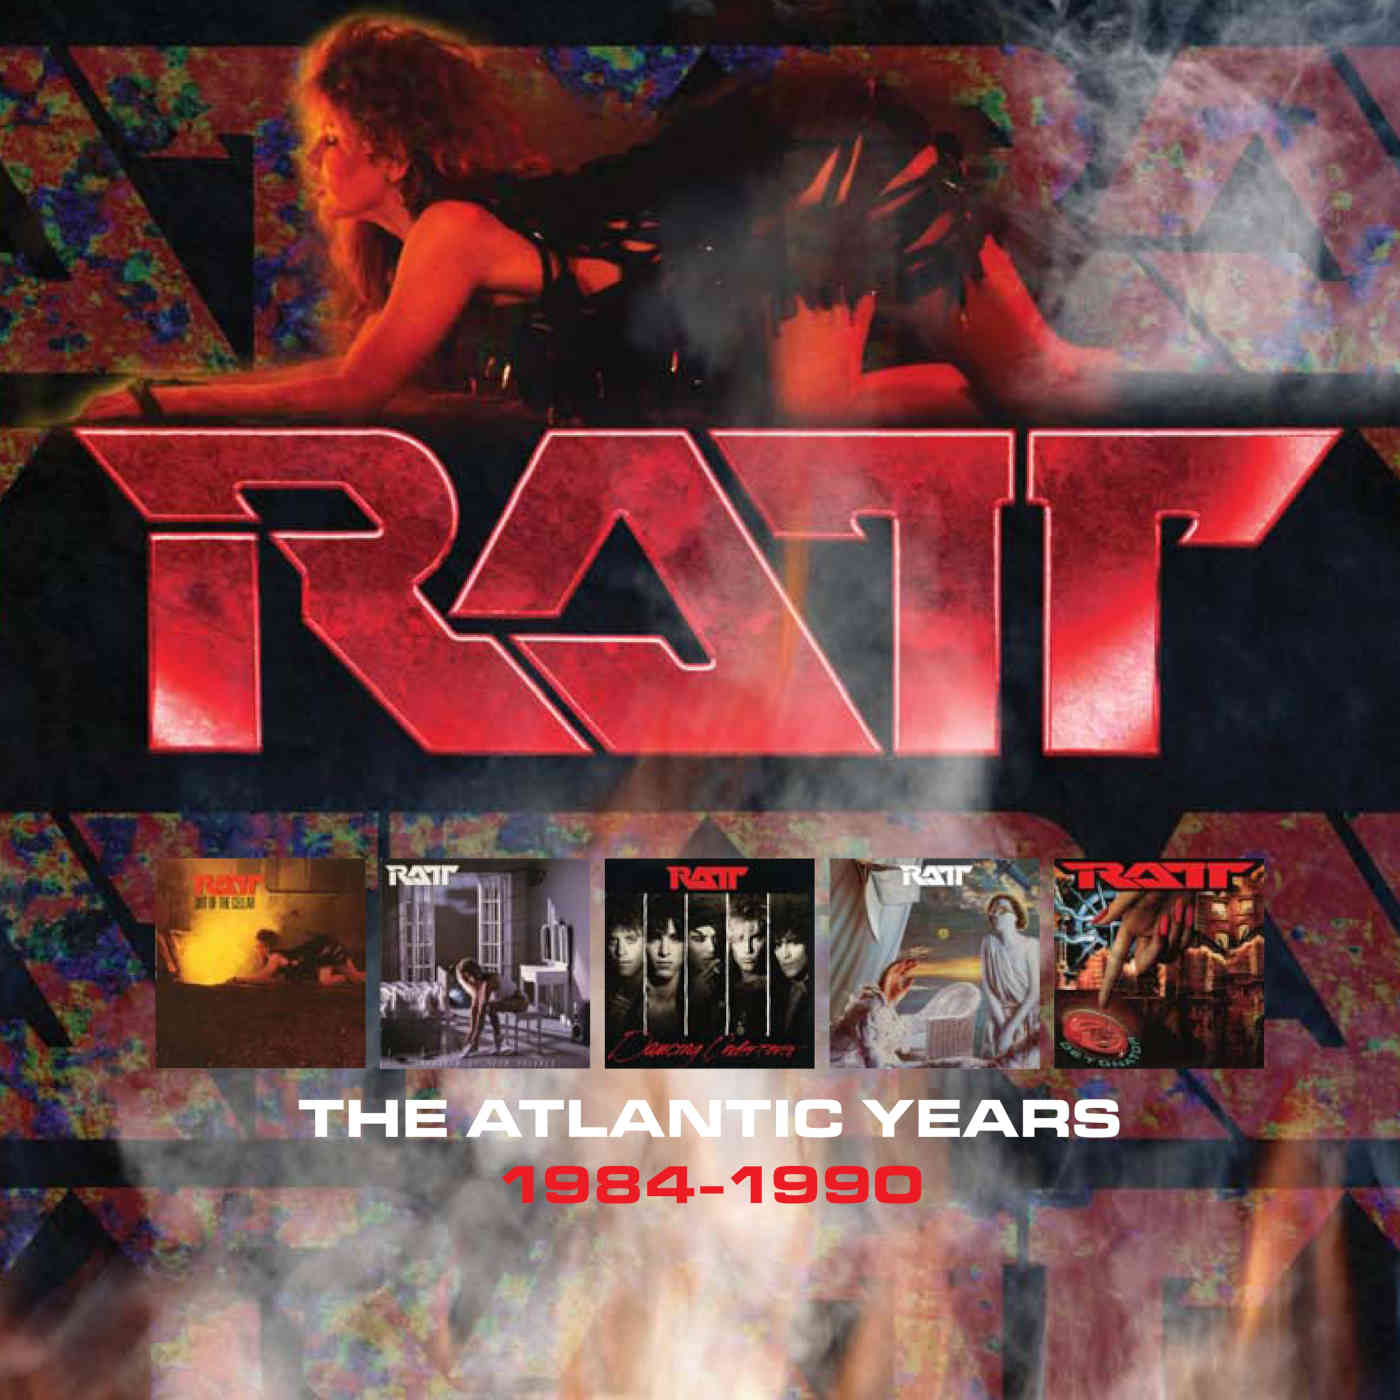 RATT: 'The Atlantic Years 1984-1990' Box Set Due In March